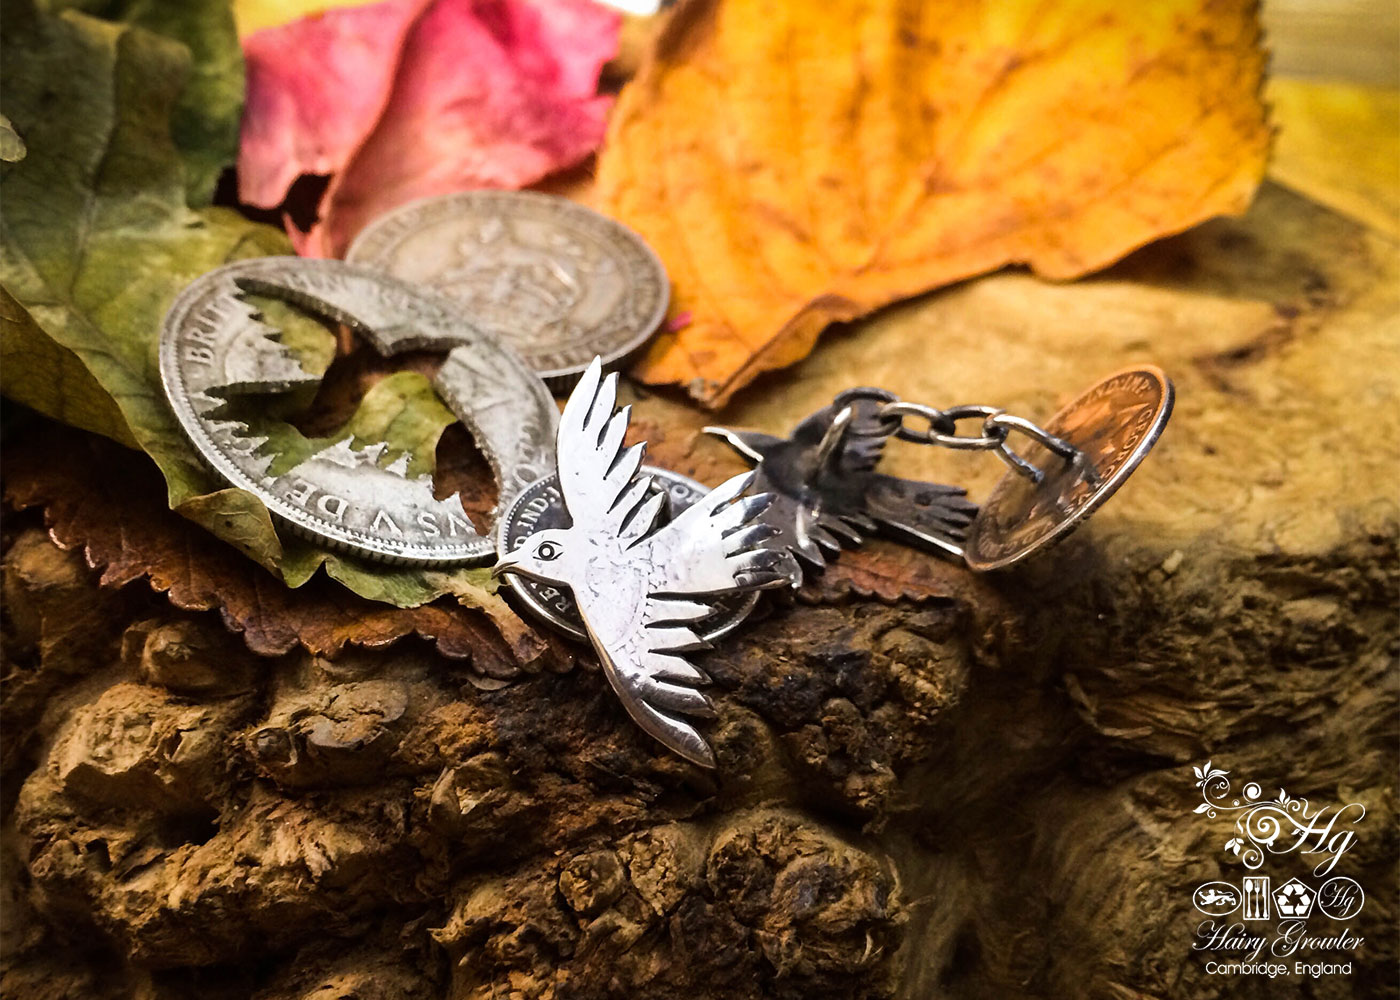 raven and bird cufflinks handcrafted and recycled from sterling silver shillings and threepence coins